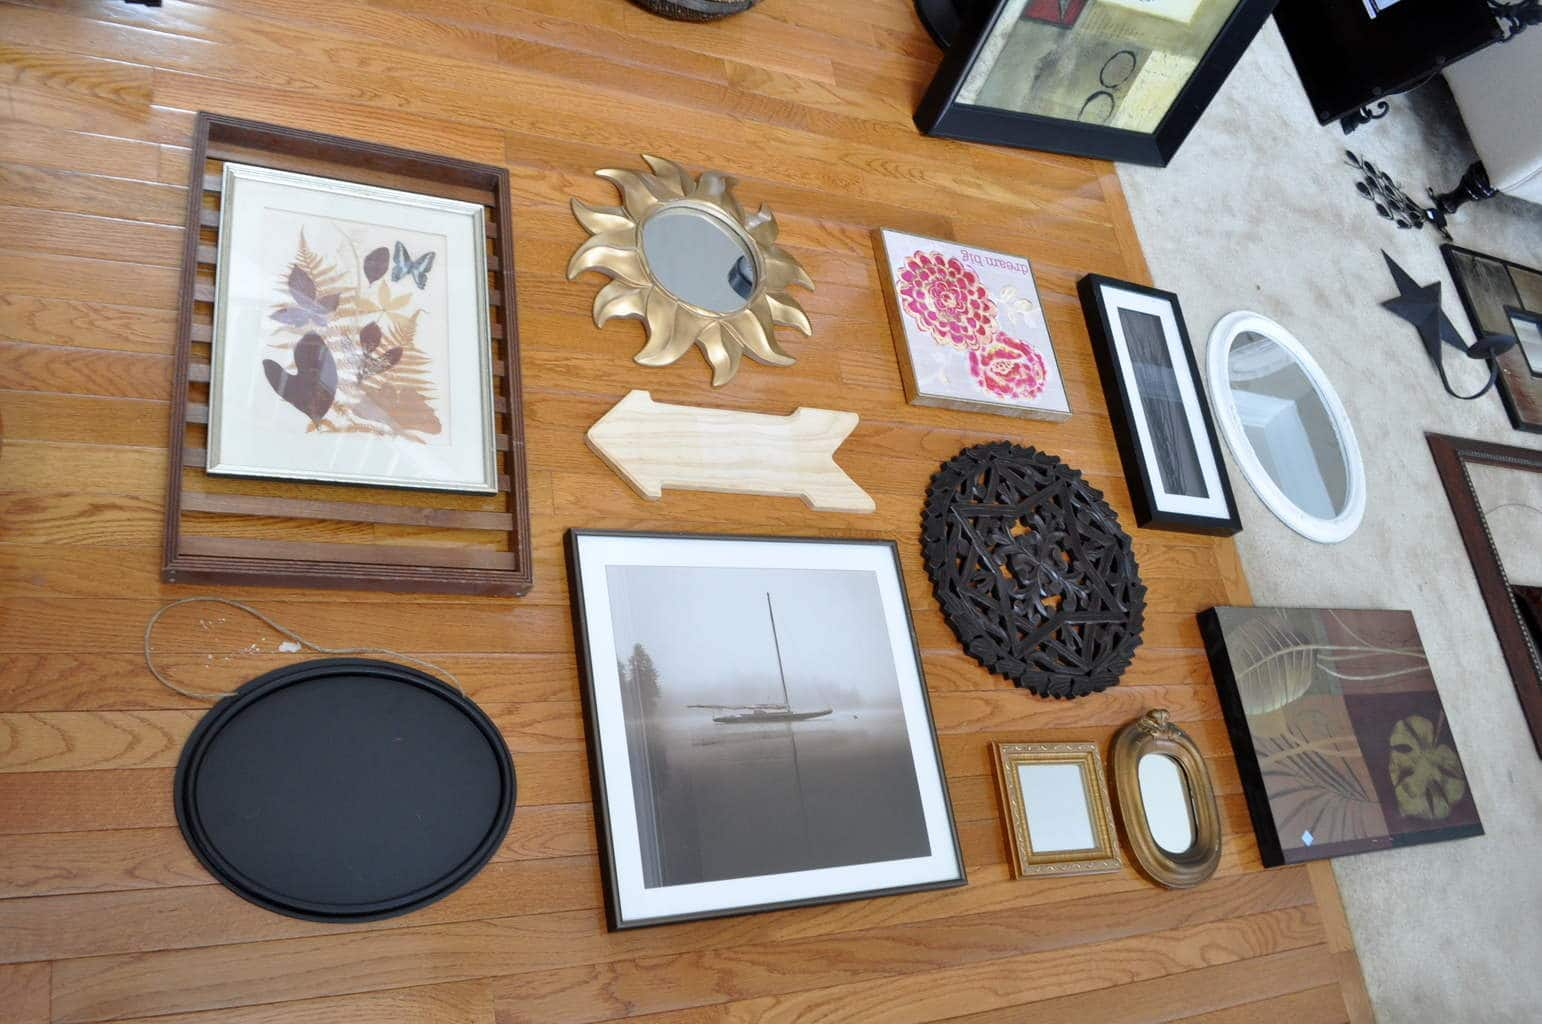 Thrift Store finds to gallery wall